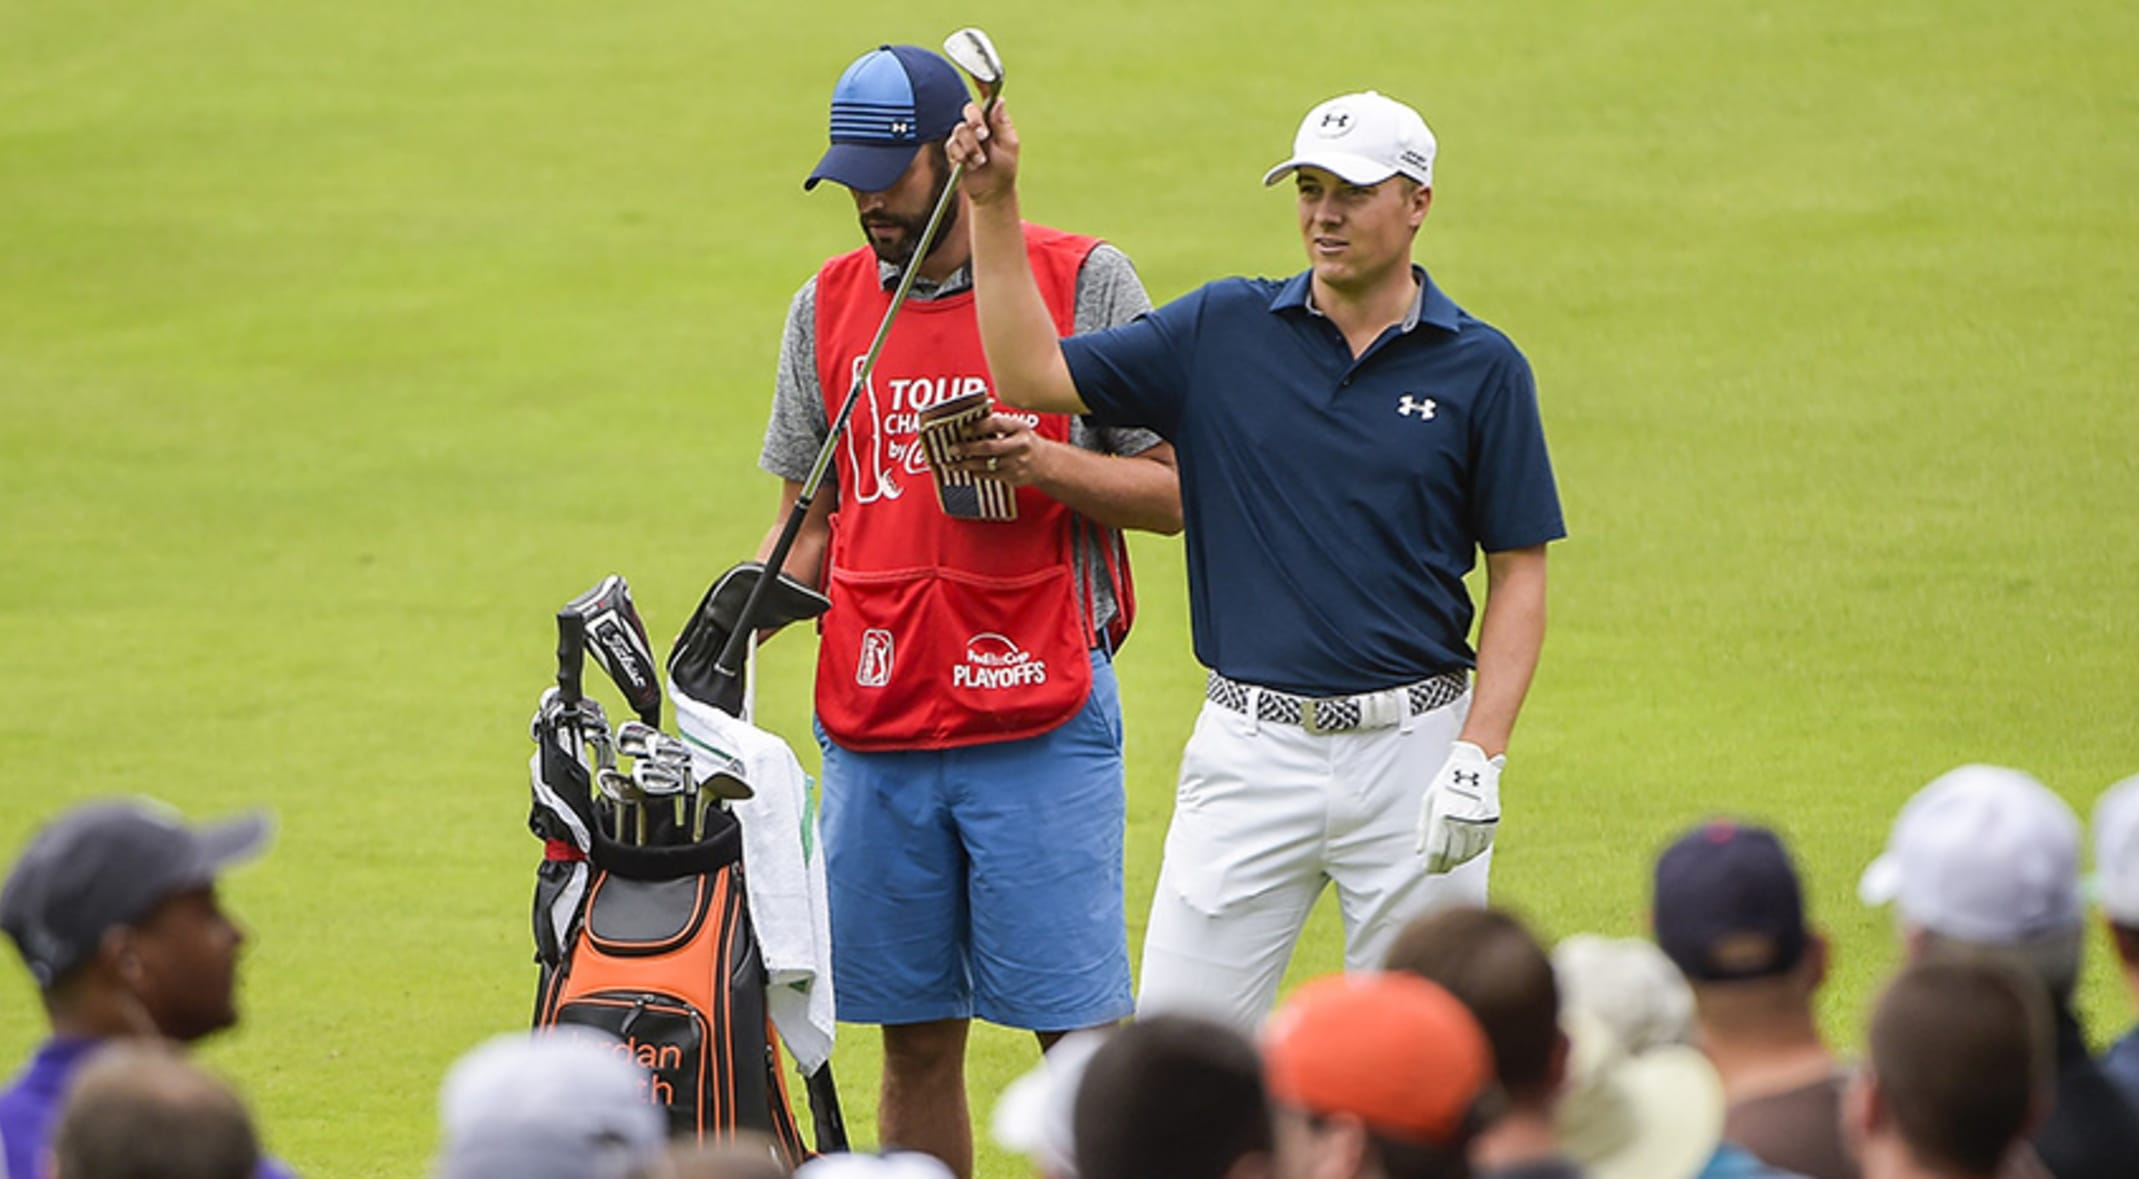 f9b4a7960 Using Titleist equipment, Jordan Spieth suffered only five bogeys in 72  holes at East Lake